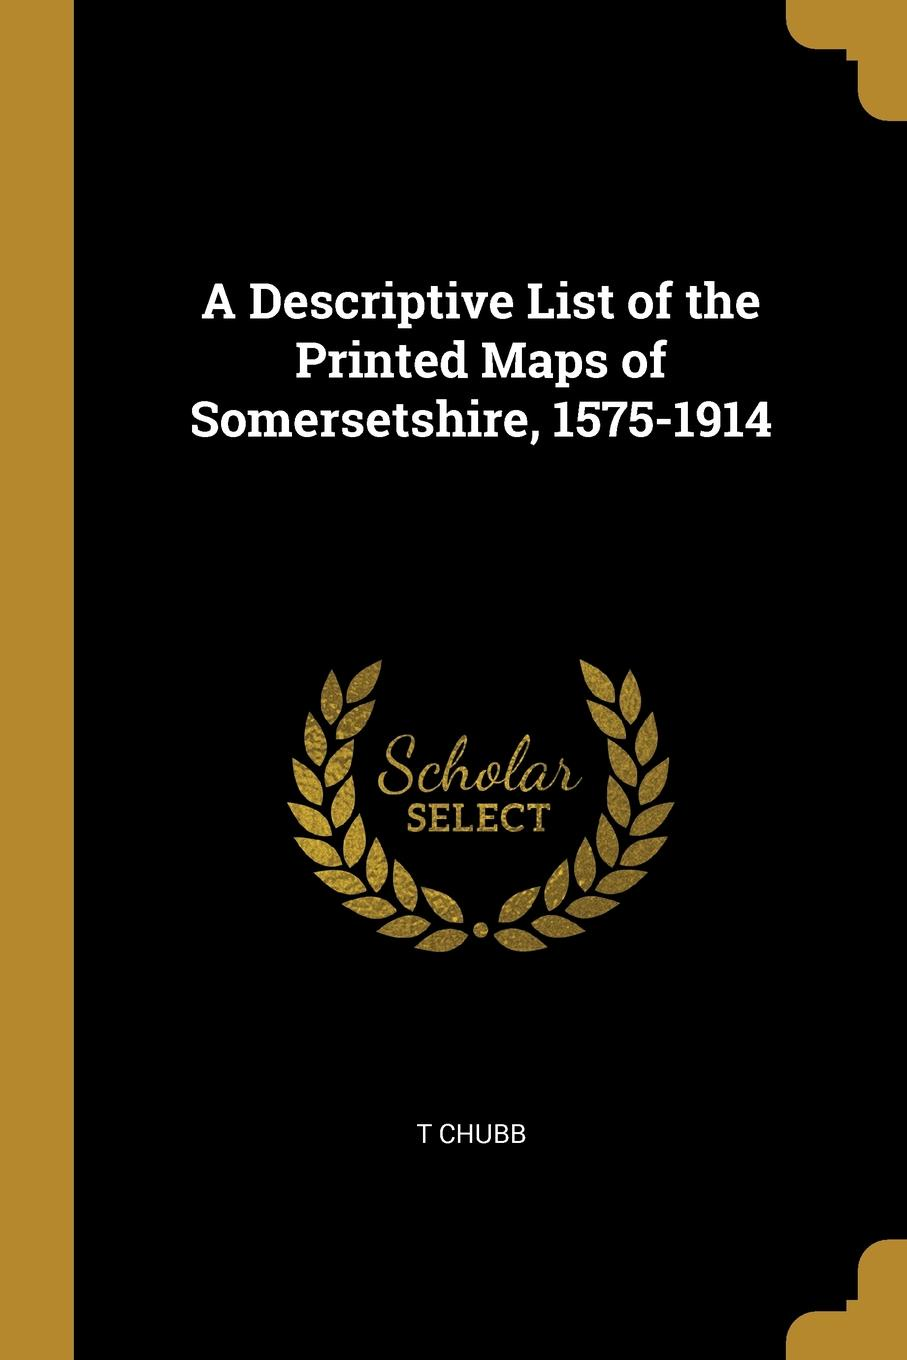 A Descriptive List of the Printed Maps of Somersetshire, 1575-1914